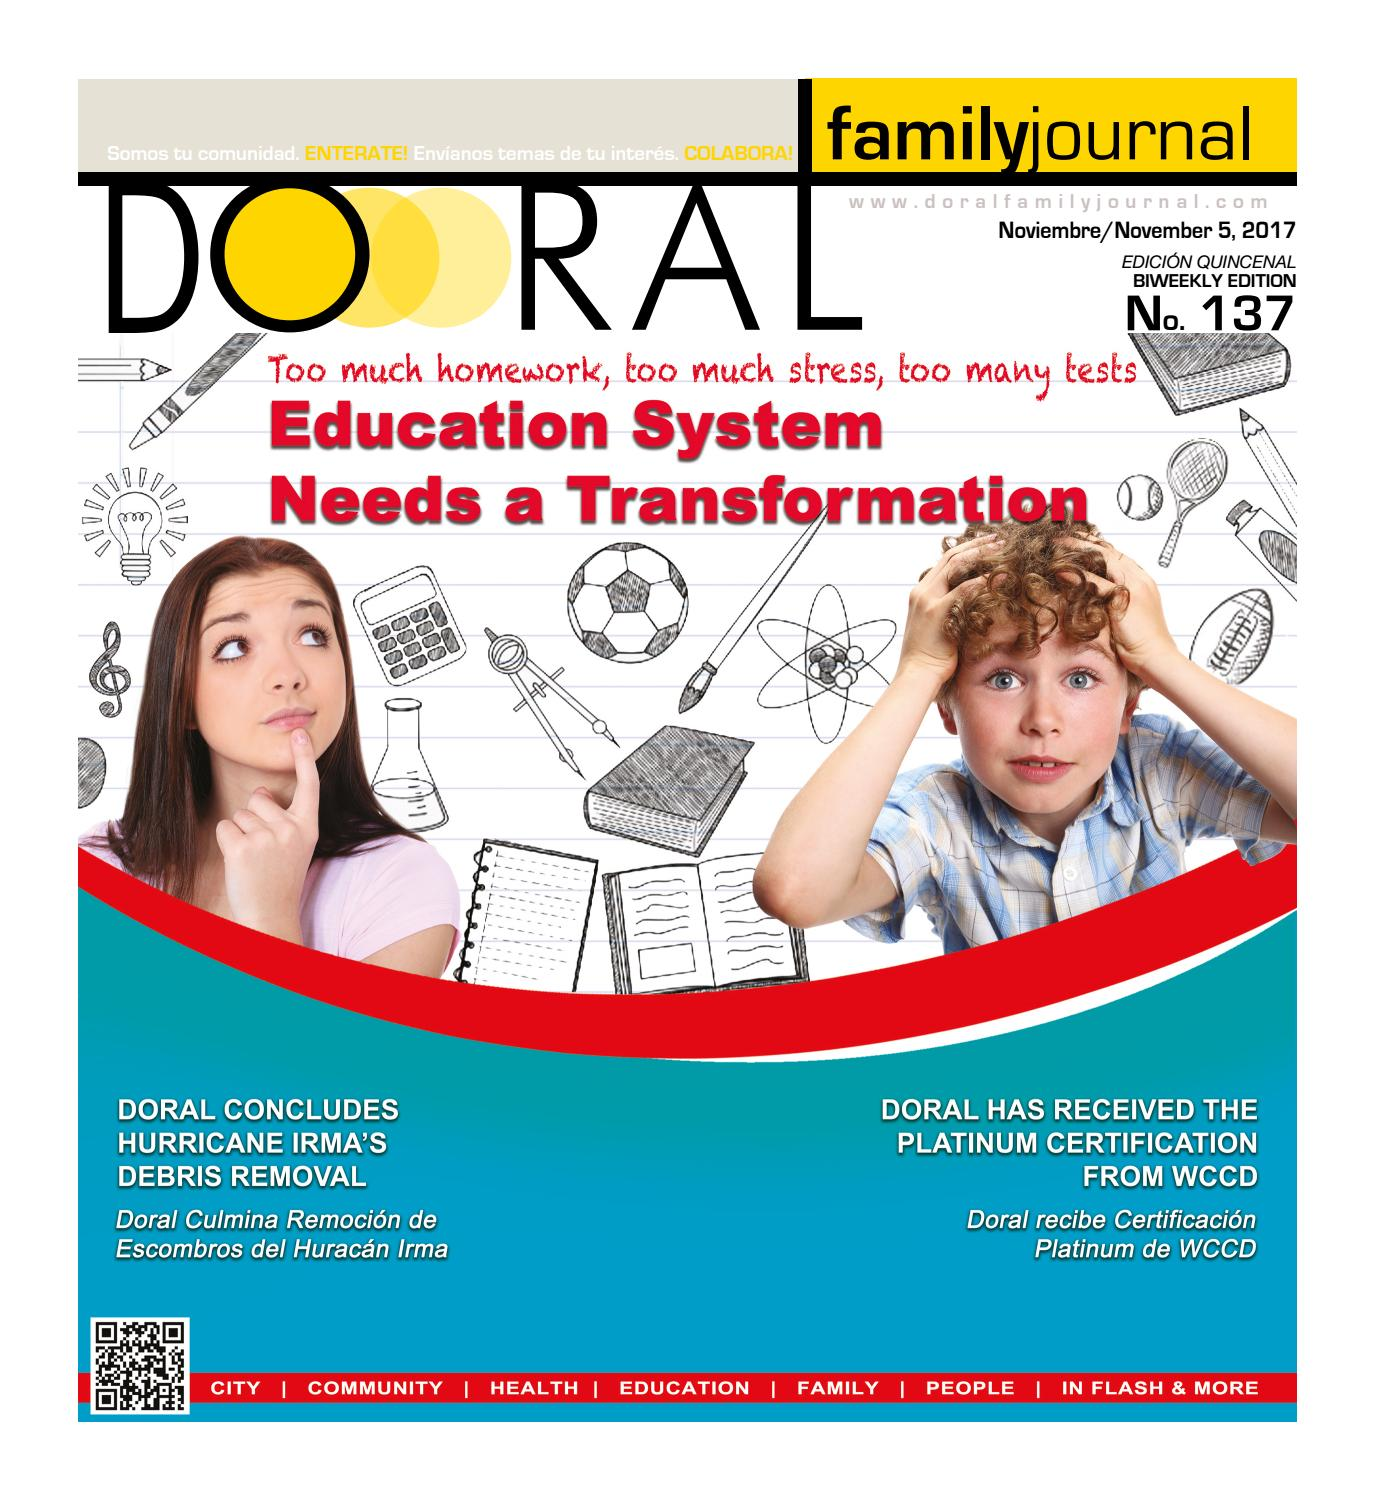 DORAL FAMILY JOURNAL # 137 by DORAL FAMILY JOURNAL - issuu